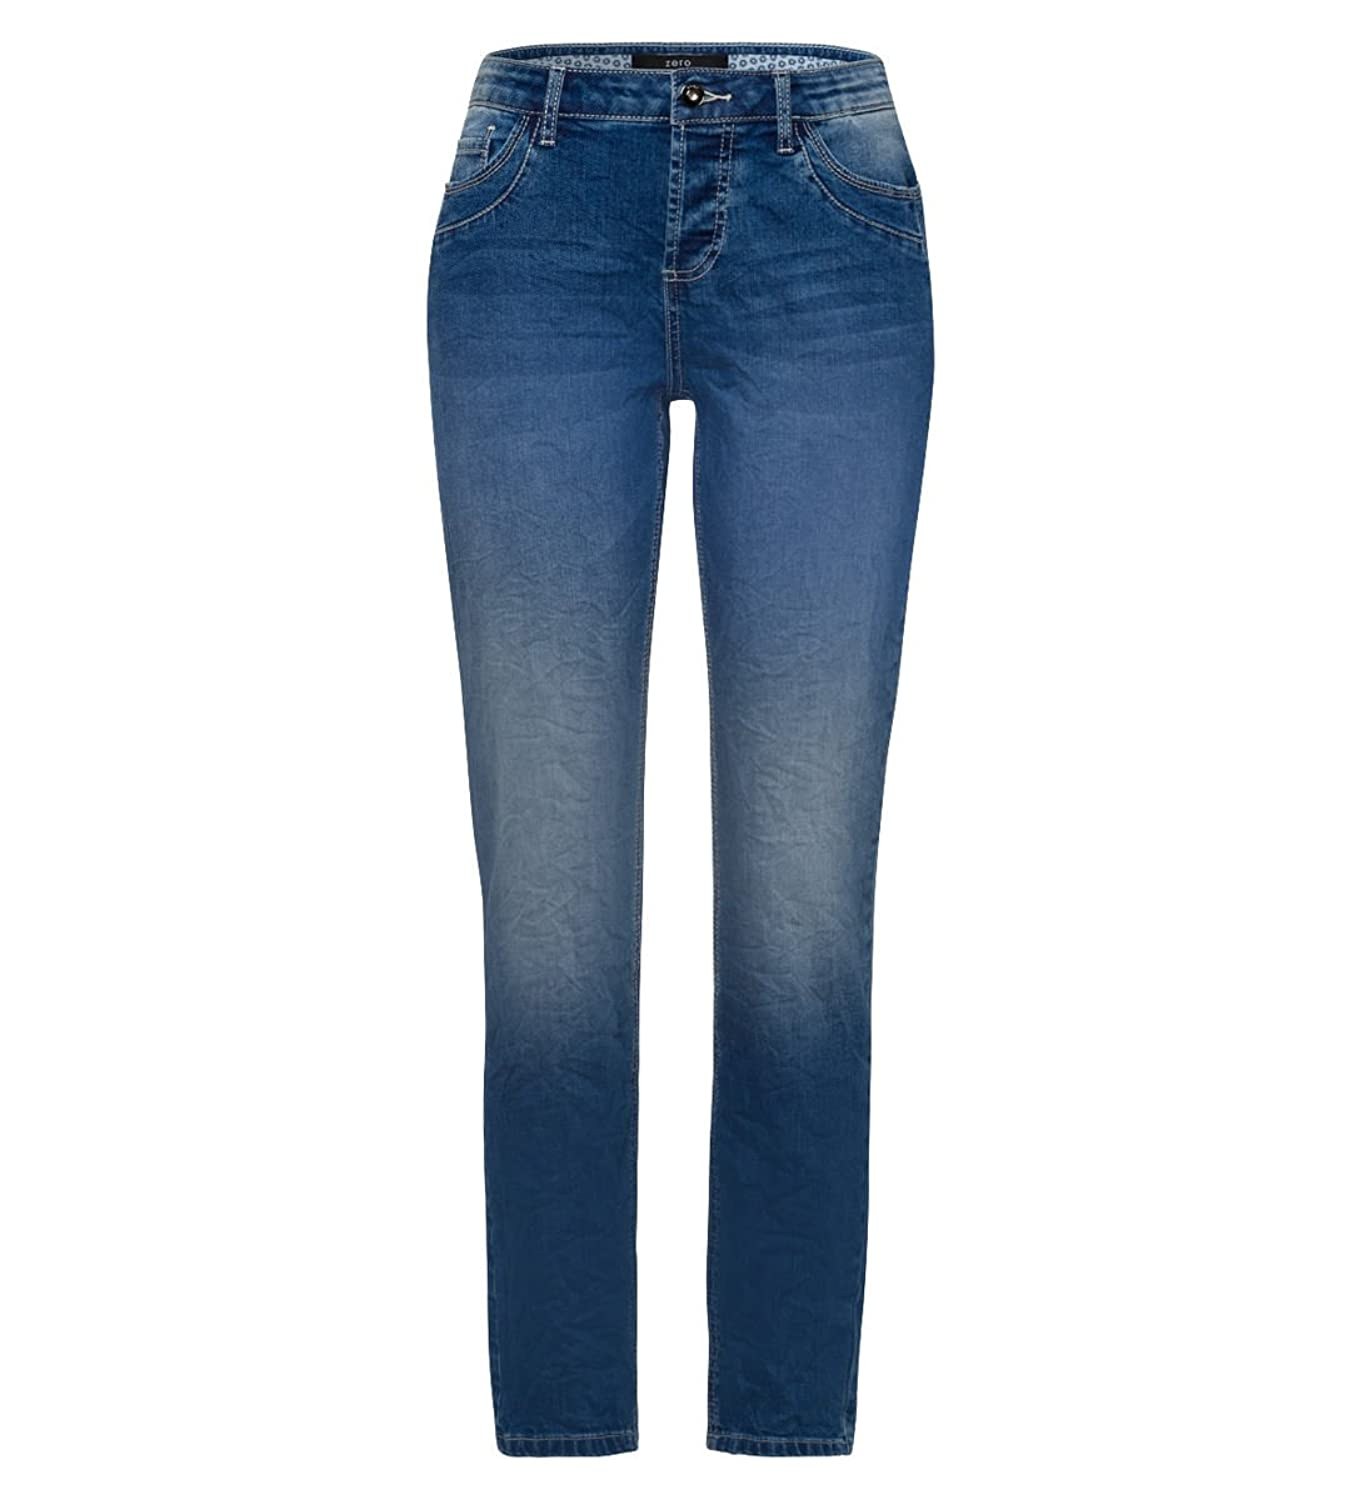 zero Damen Jeans im Washed-out-Style 30 Inch 402677